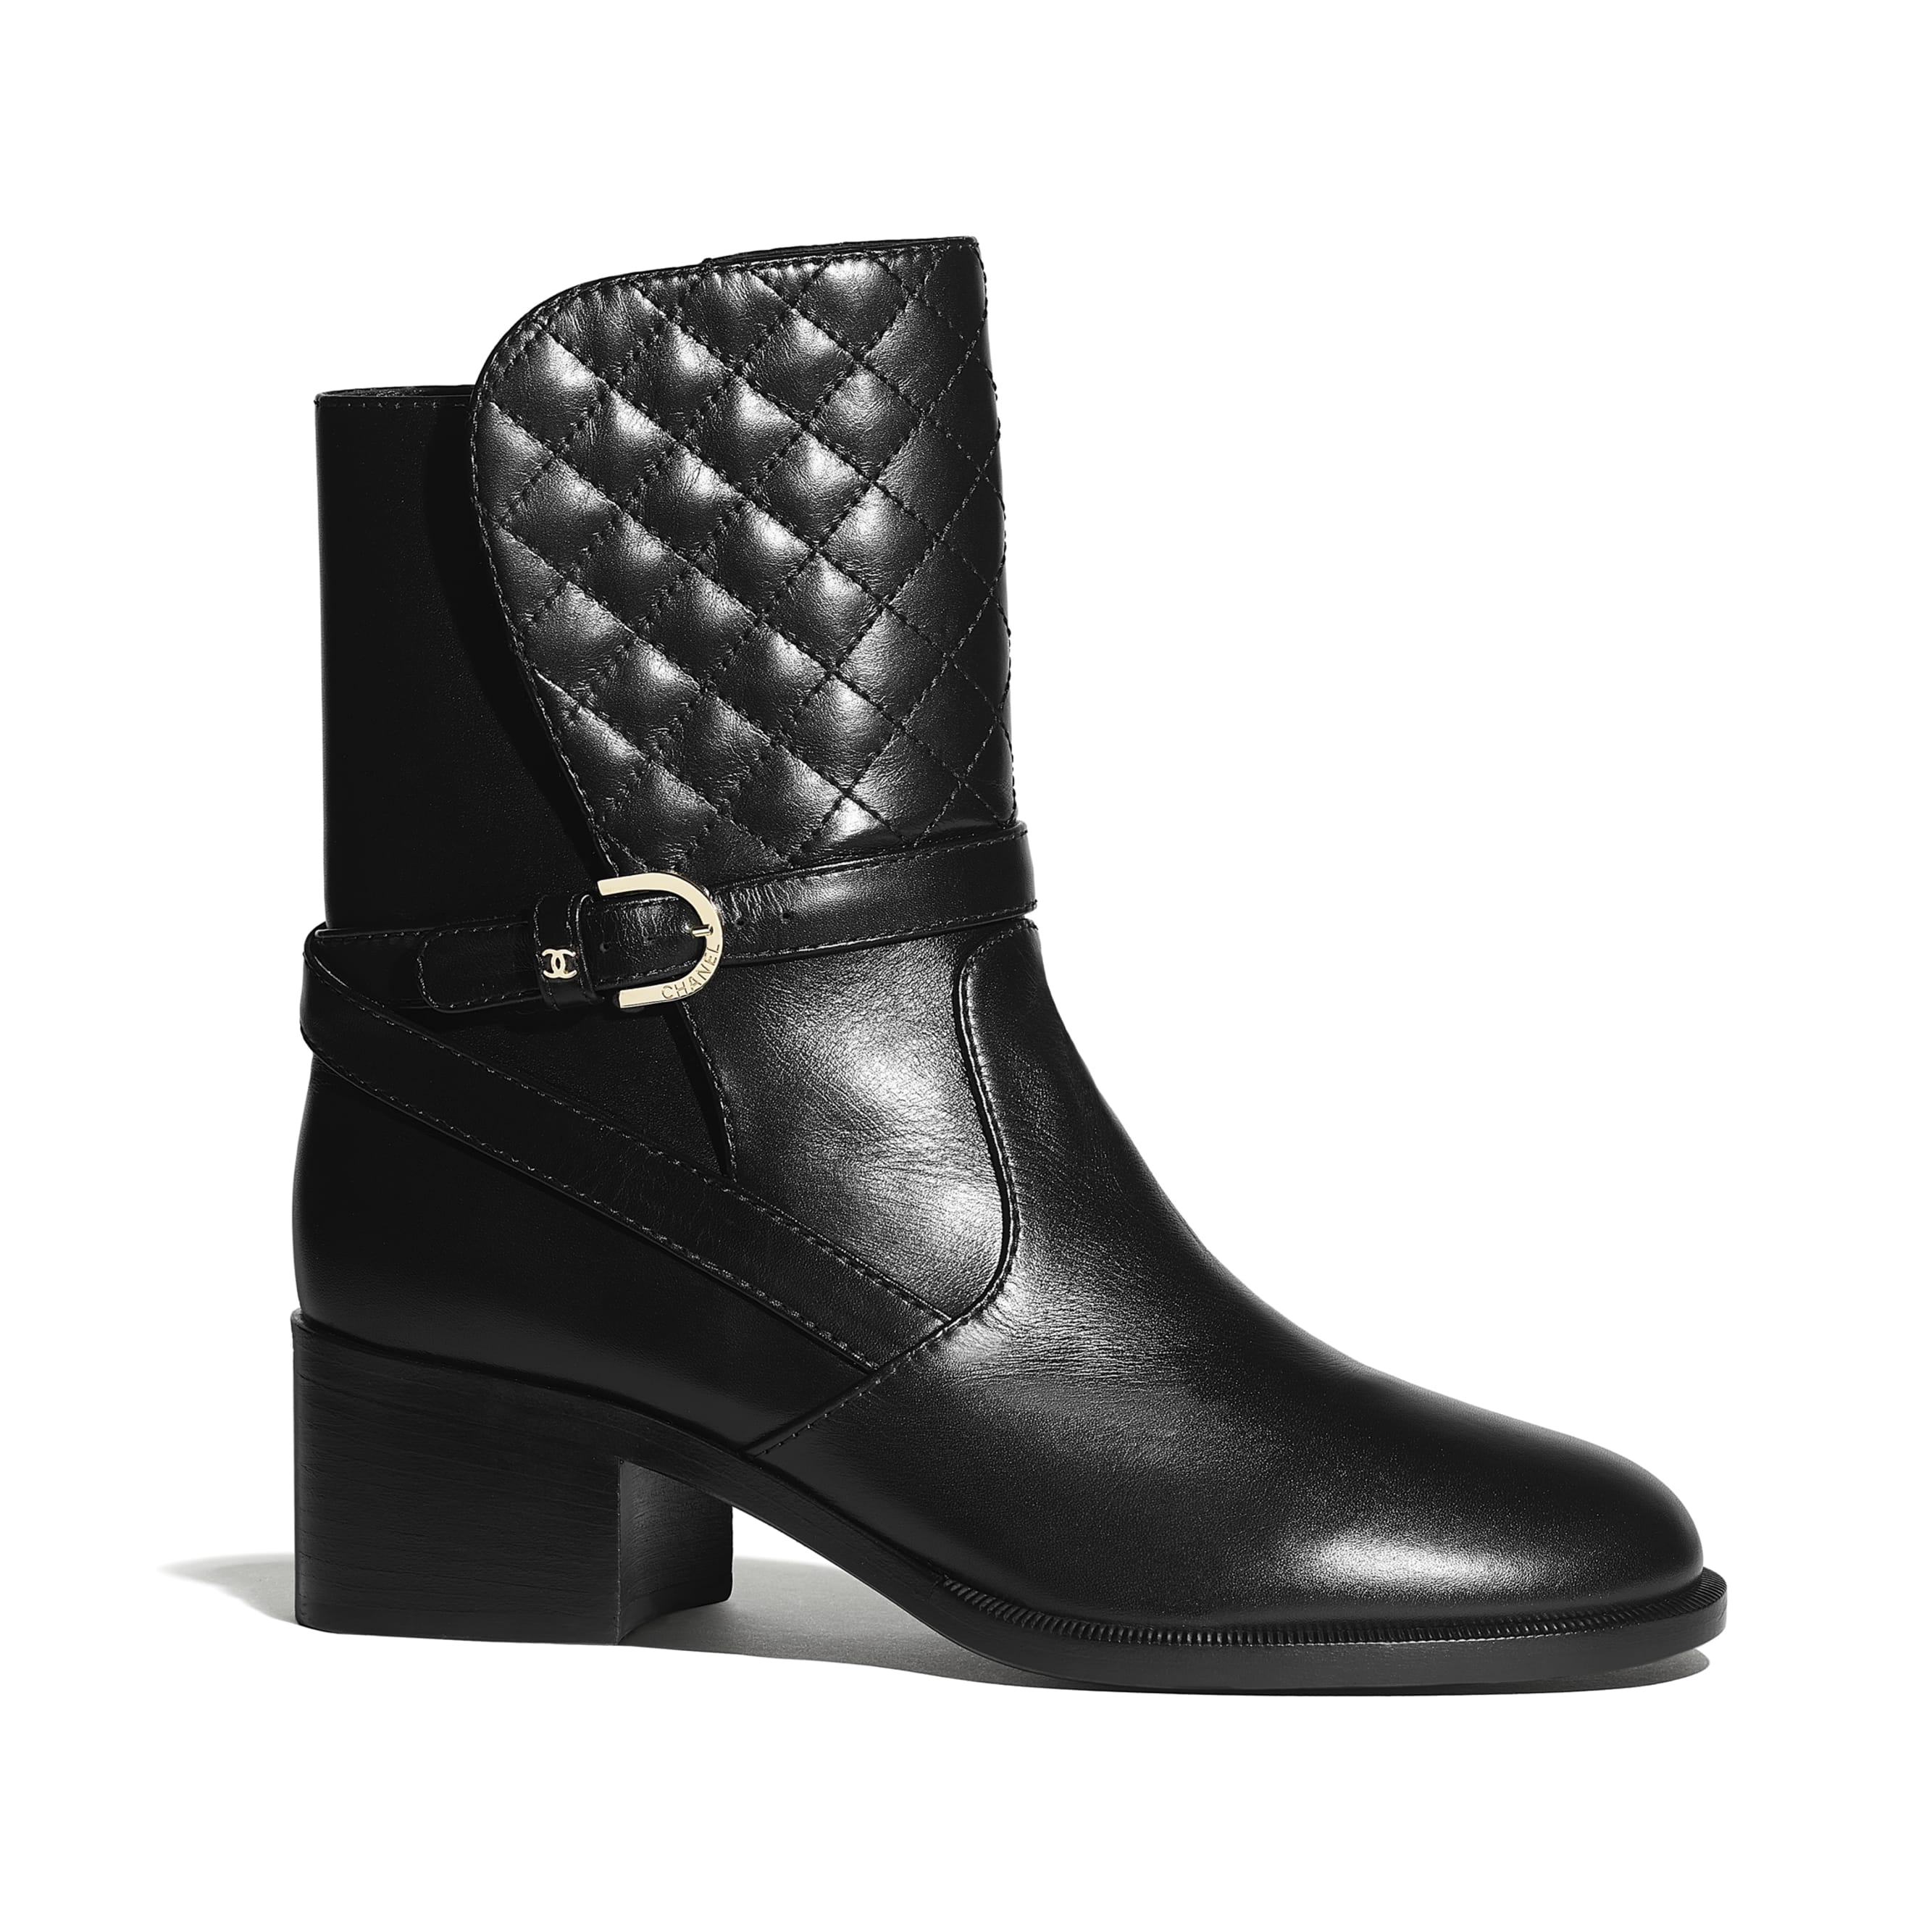 Ankle Boots - Black - Calfskin - Default view - see standard sized version